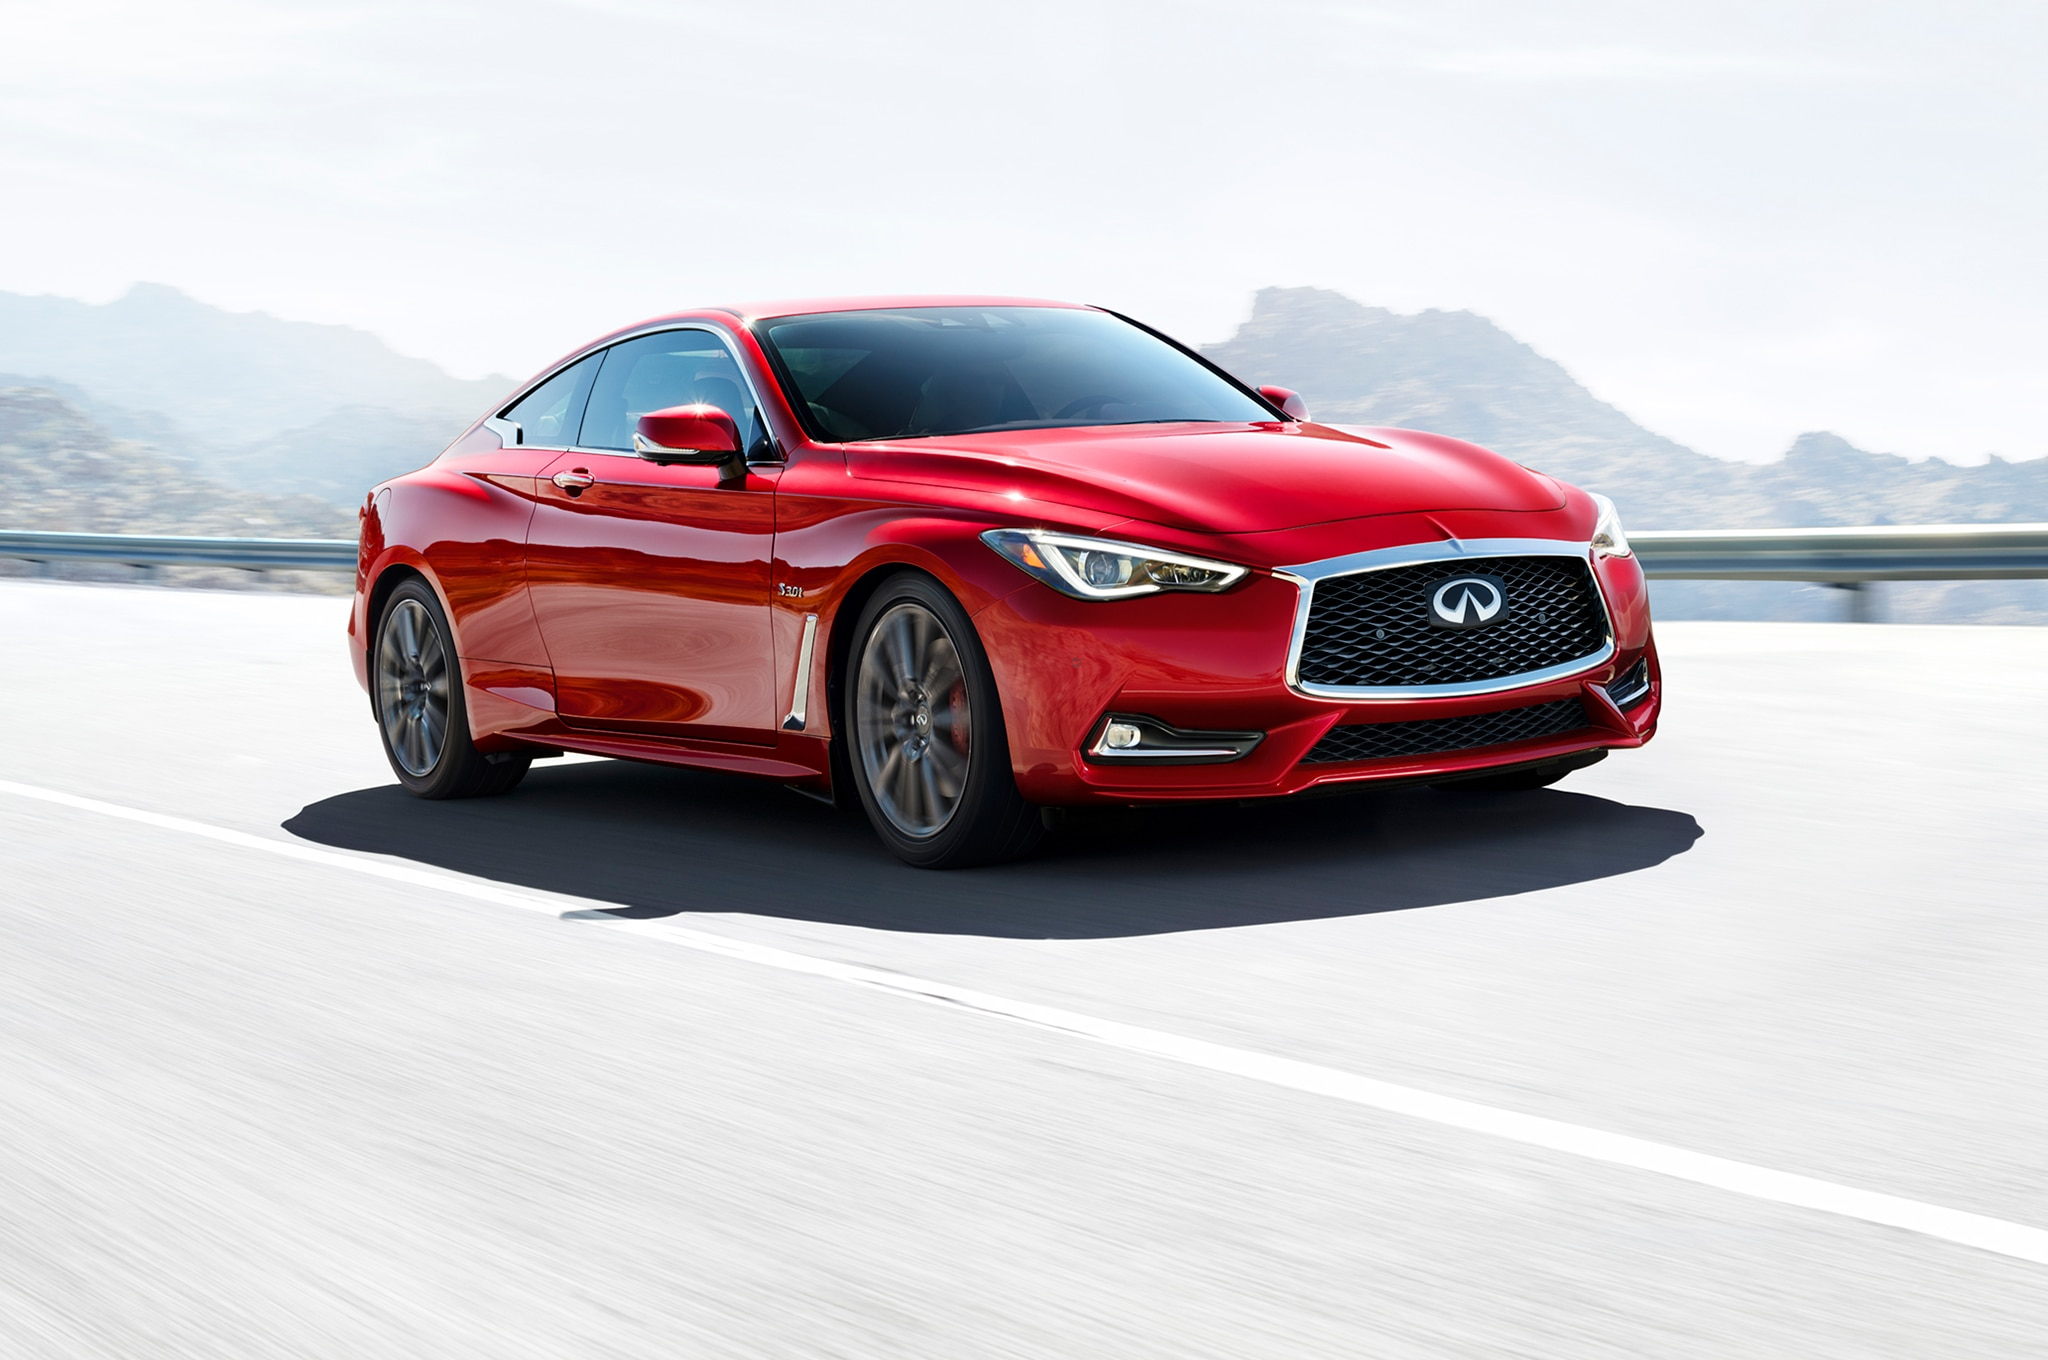 2017 infiniti q60 red sport 400 to start at 52 205 automobile magazine. Black Bedroom Furniture Sets. Home Design Ideas